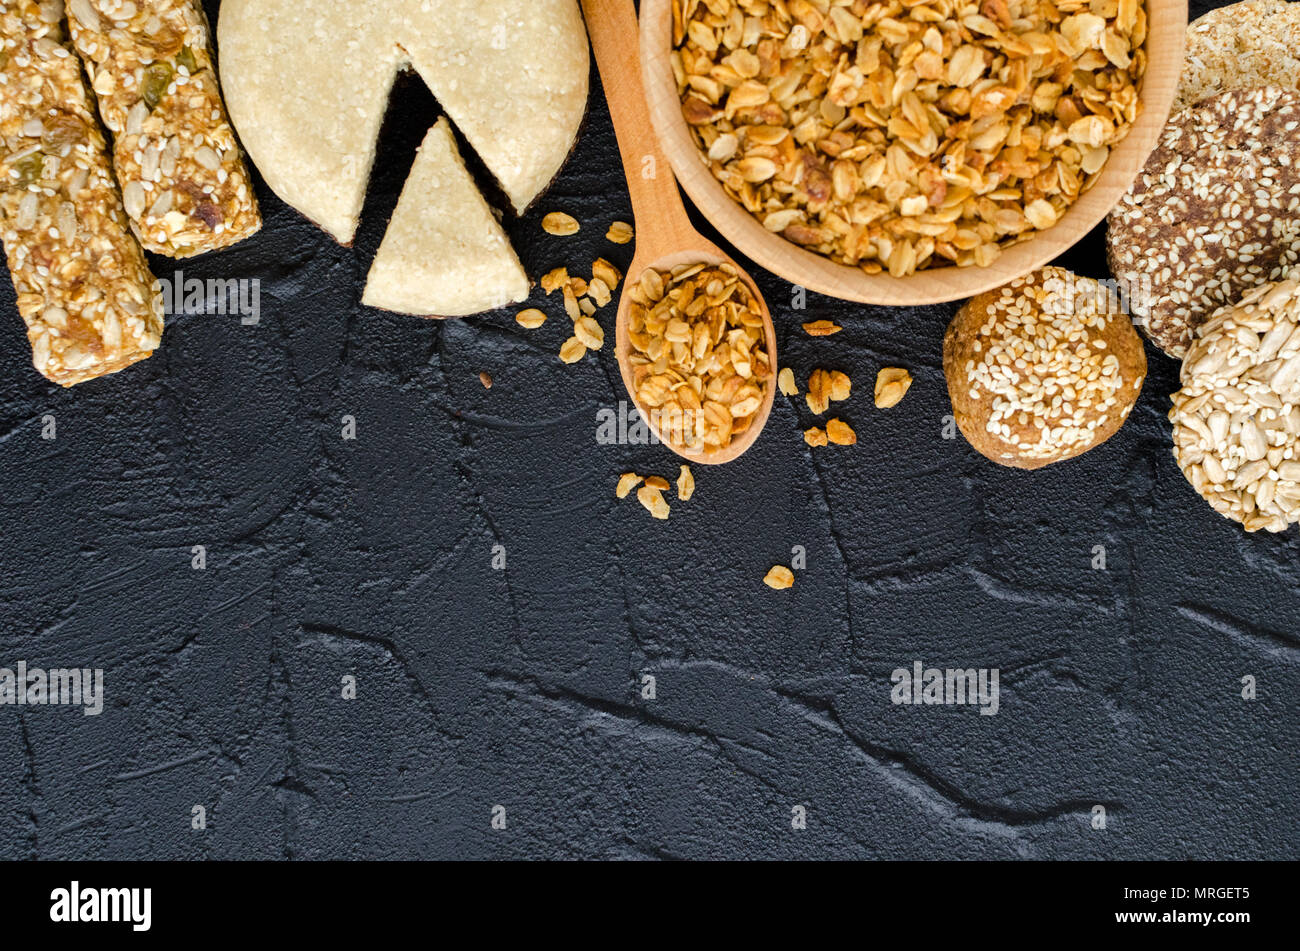 Healthy snacks. Fitness food. Sesame halva. Bowl and spoon with oat flakes, mint. Granola bars with flakes, sesame, sunflower and pumpkin seeds, raisi - Stock Image